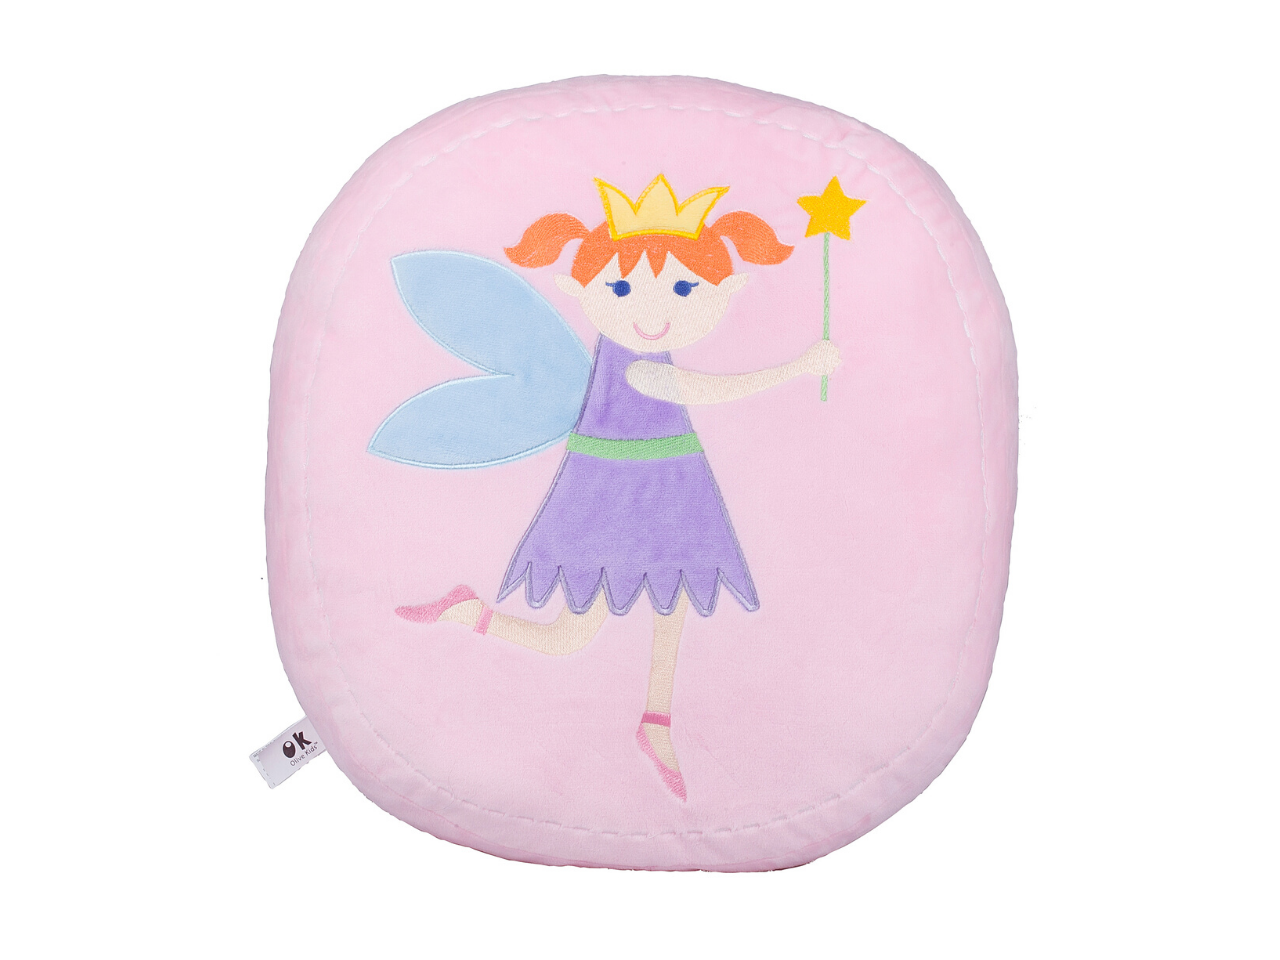 Plush Pillow - Fairy Princess